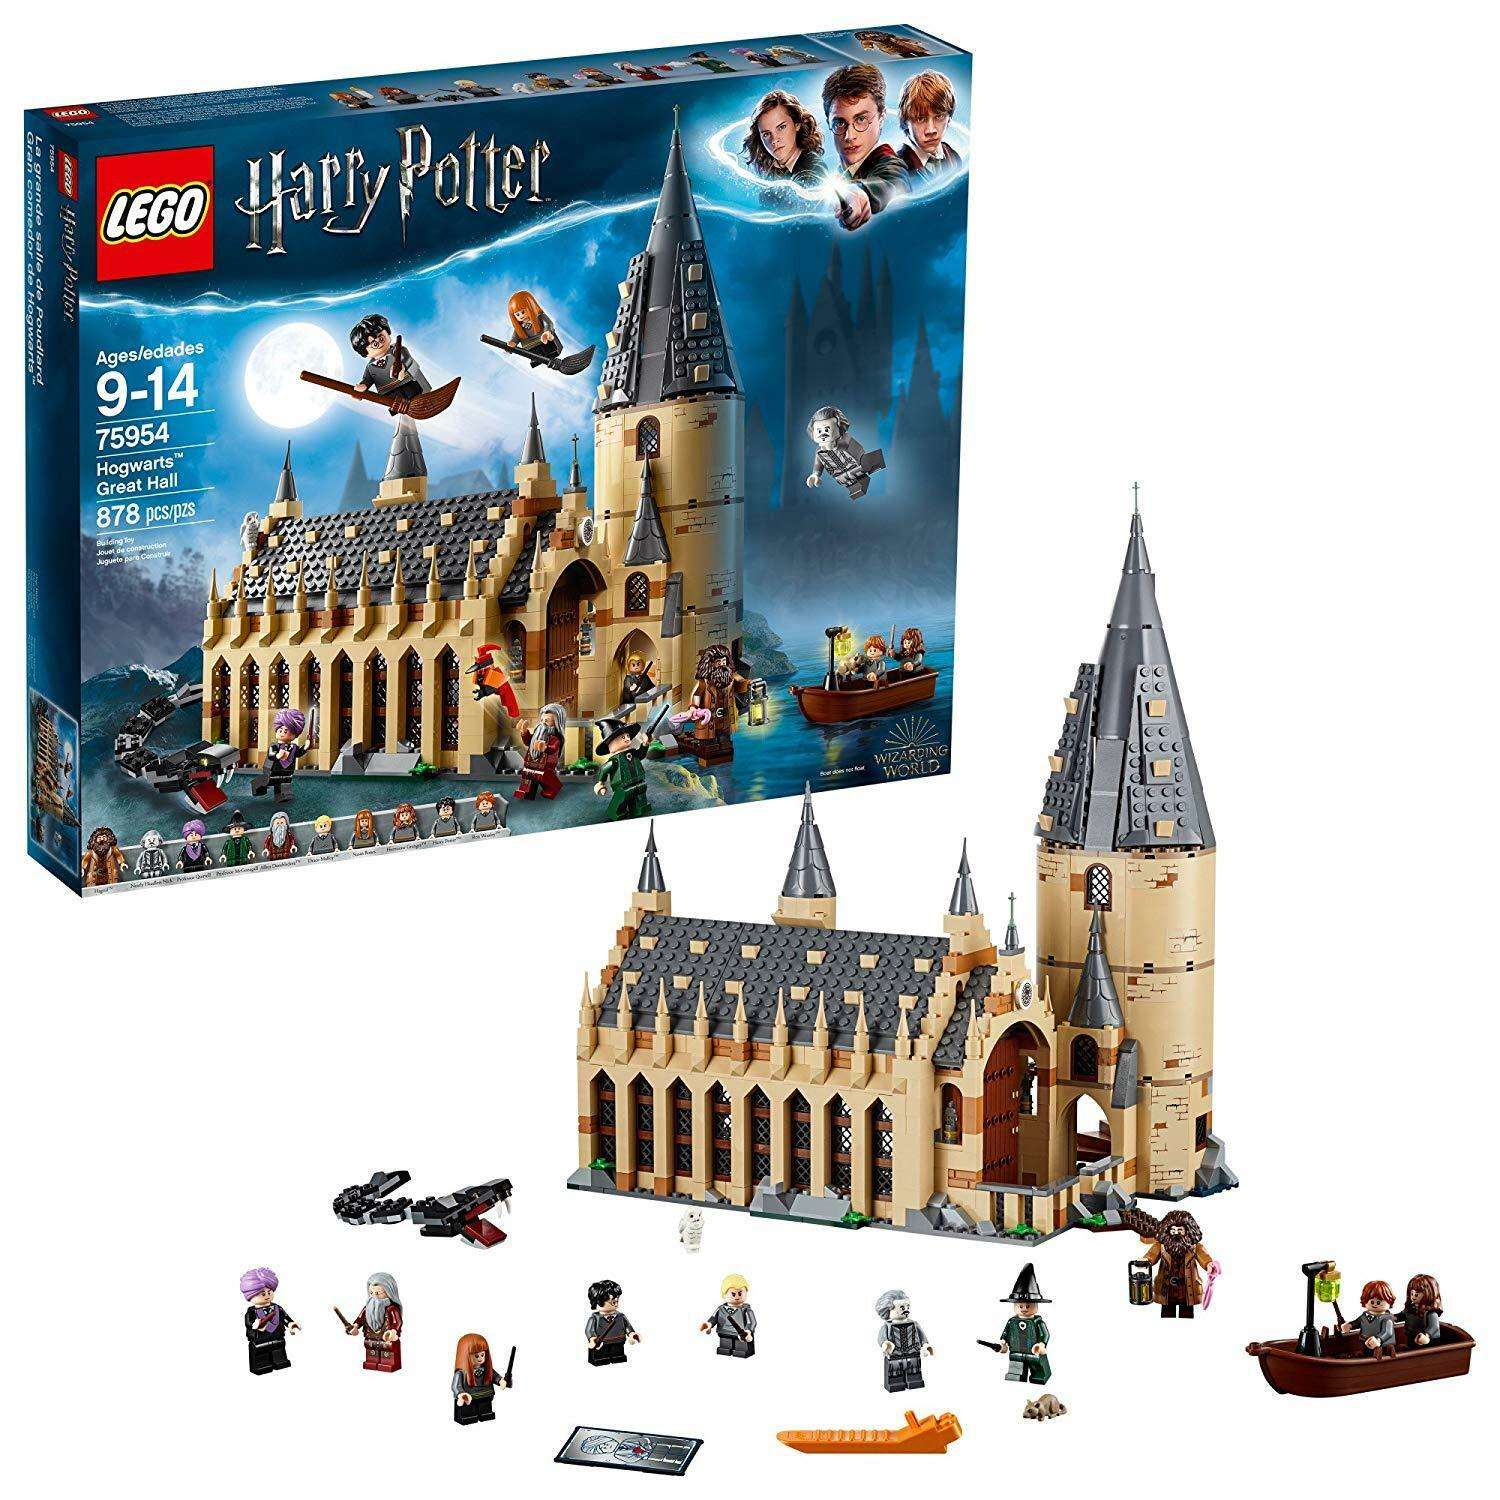 LEGO 75954 Harry Potter Hogwarts Great Hall Building Kit, 878 878 878 Pieces adc9e1